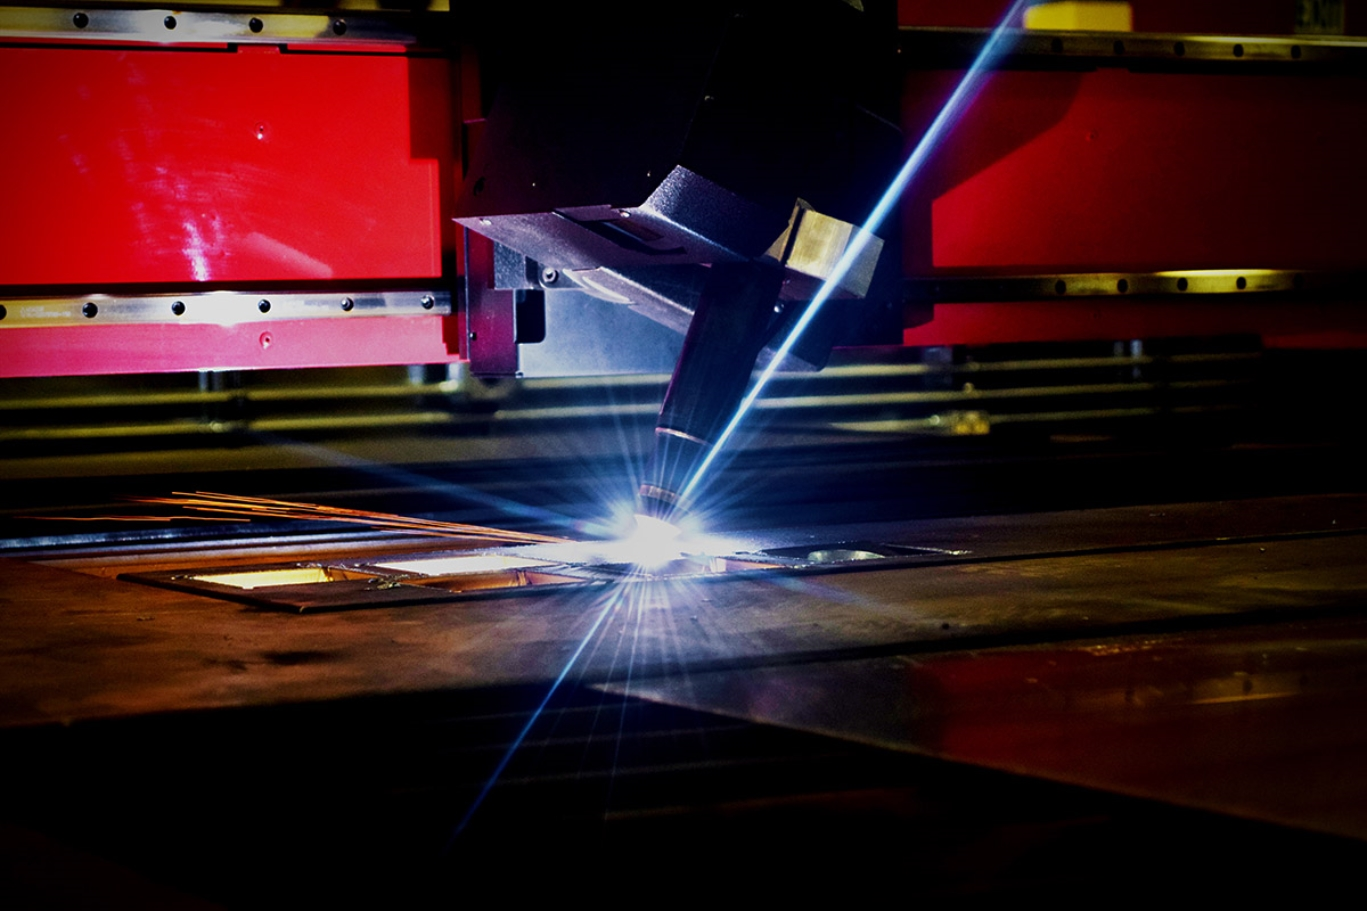 Lincoln Electric Torchmate 5100 Industrial Cnc Plasma